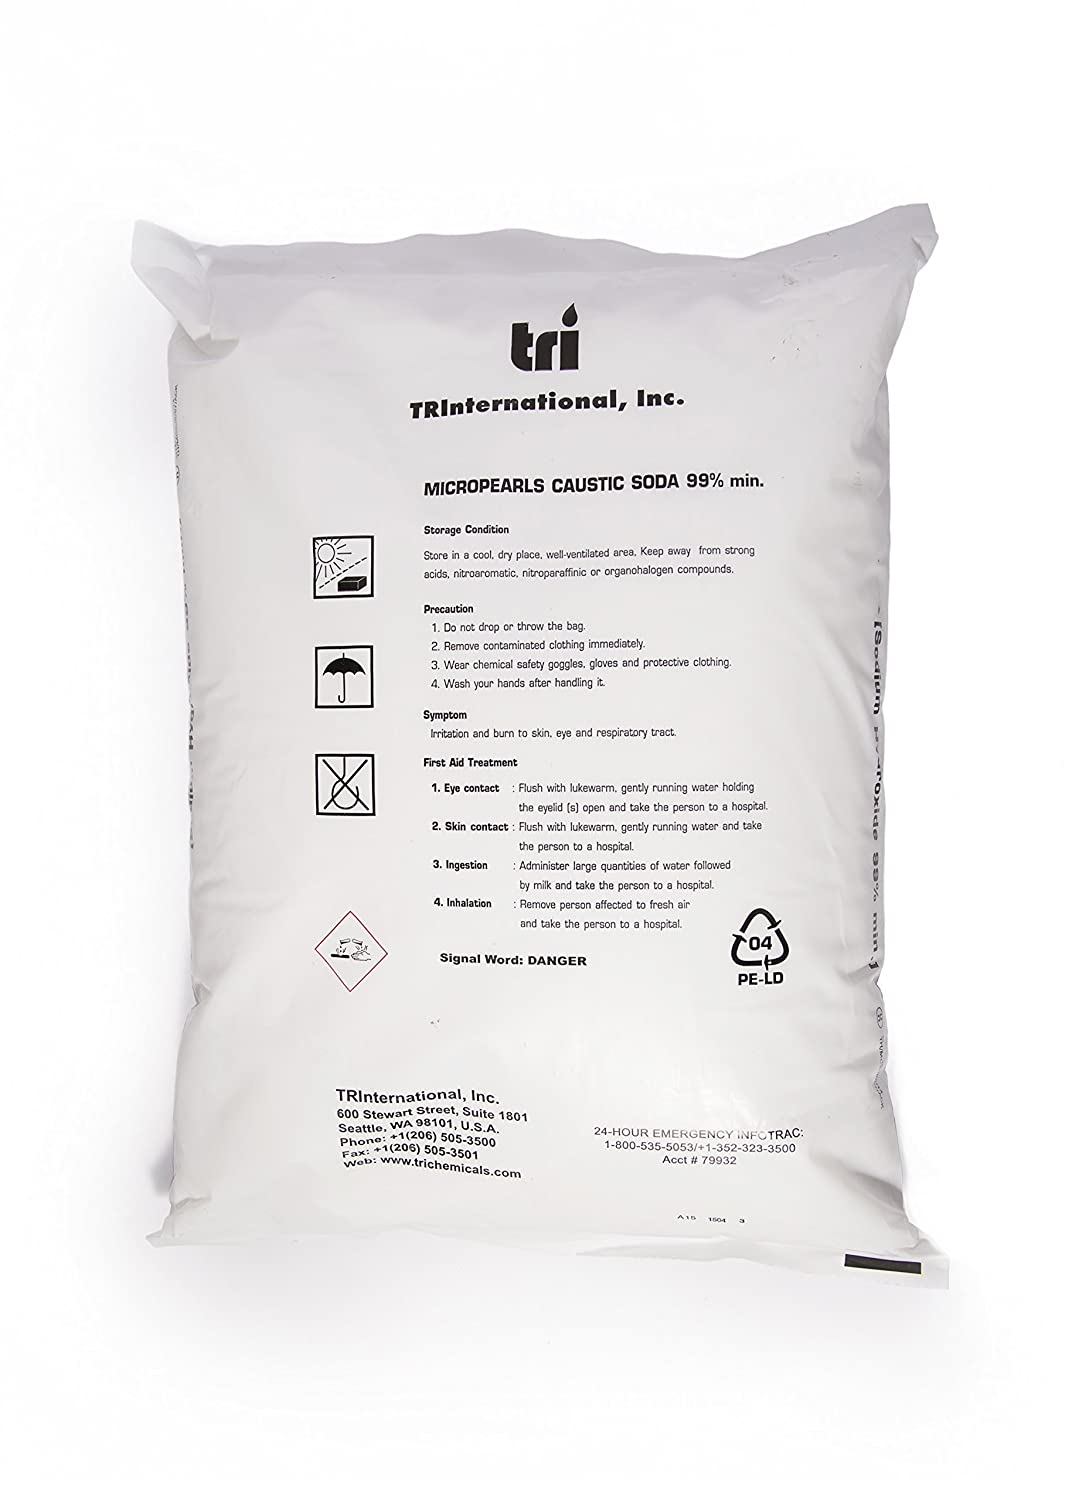 Purchase Caustic Soda from TRI at Amazon.com